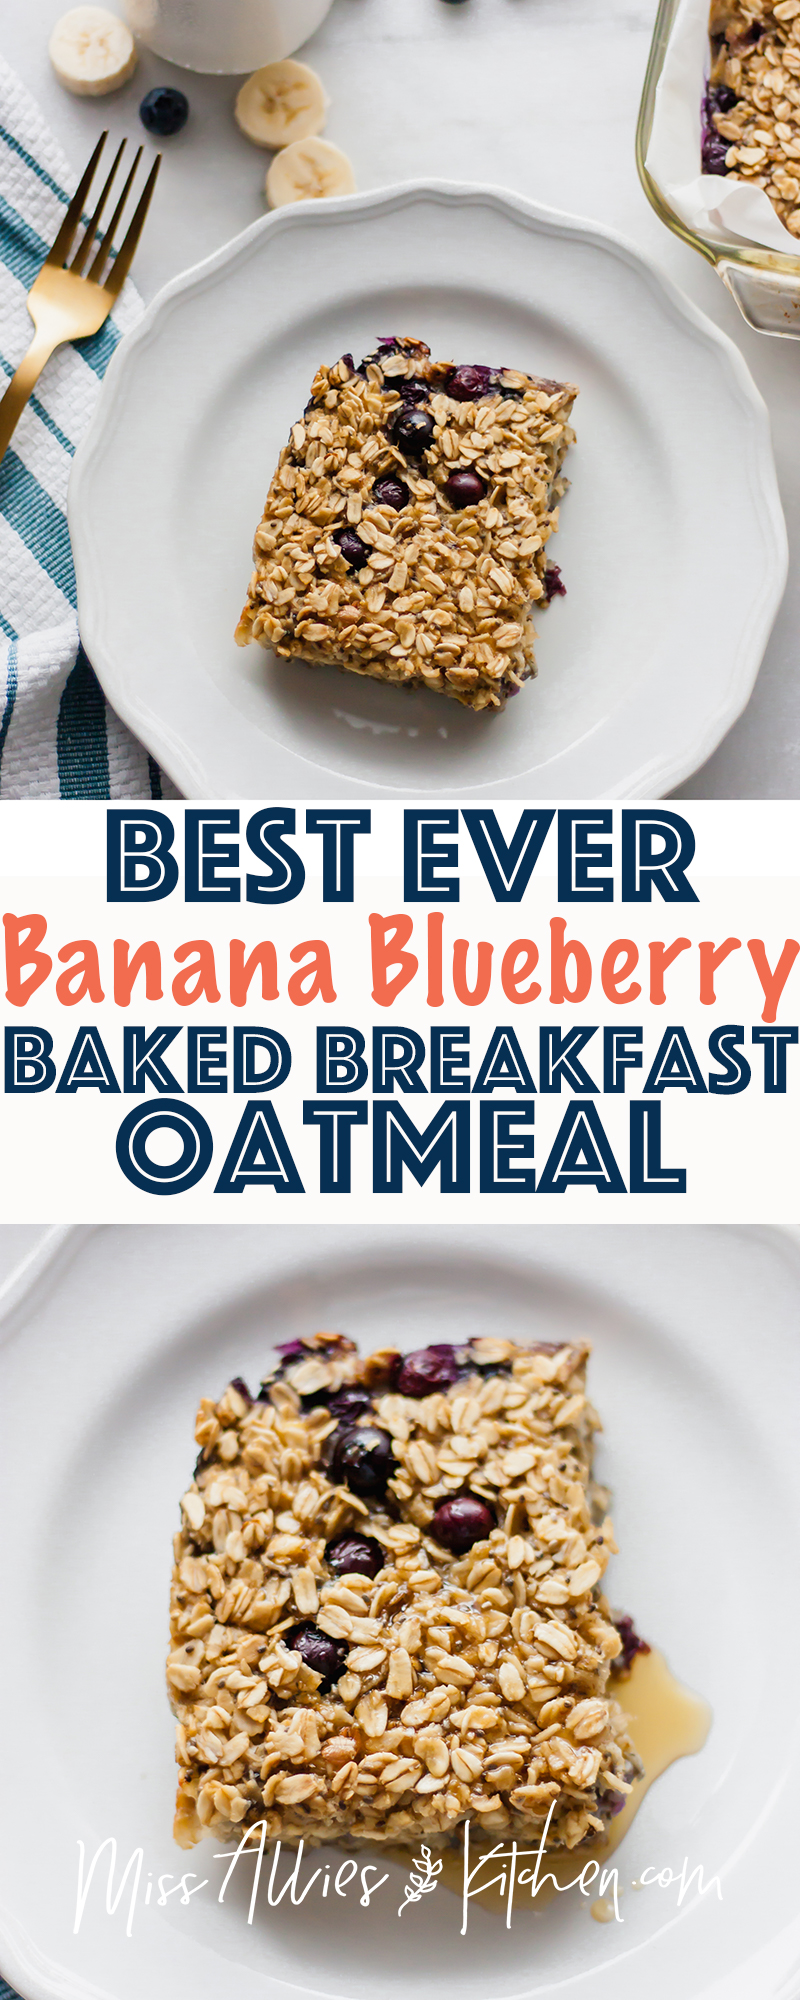 Best Ever Banana Blueberry Baked Breakfast Oatmeal